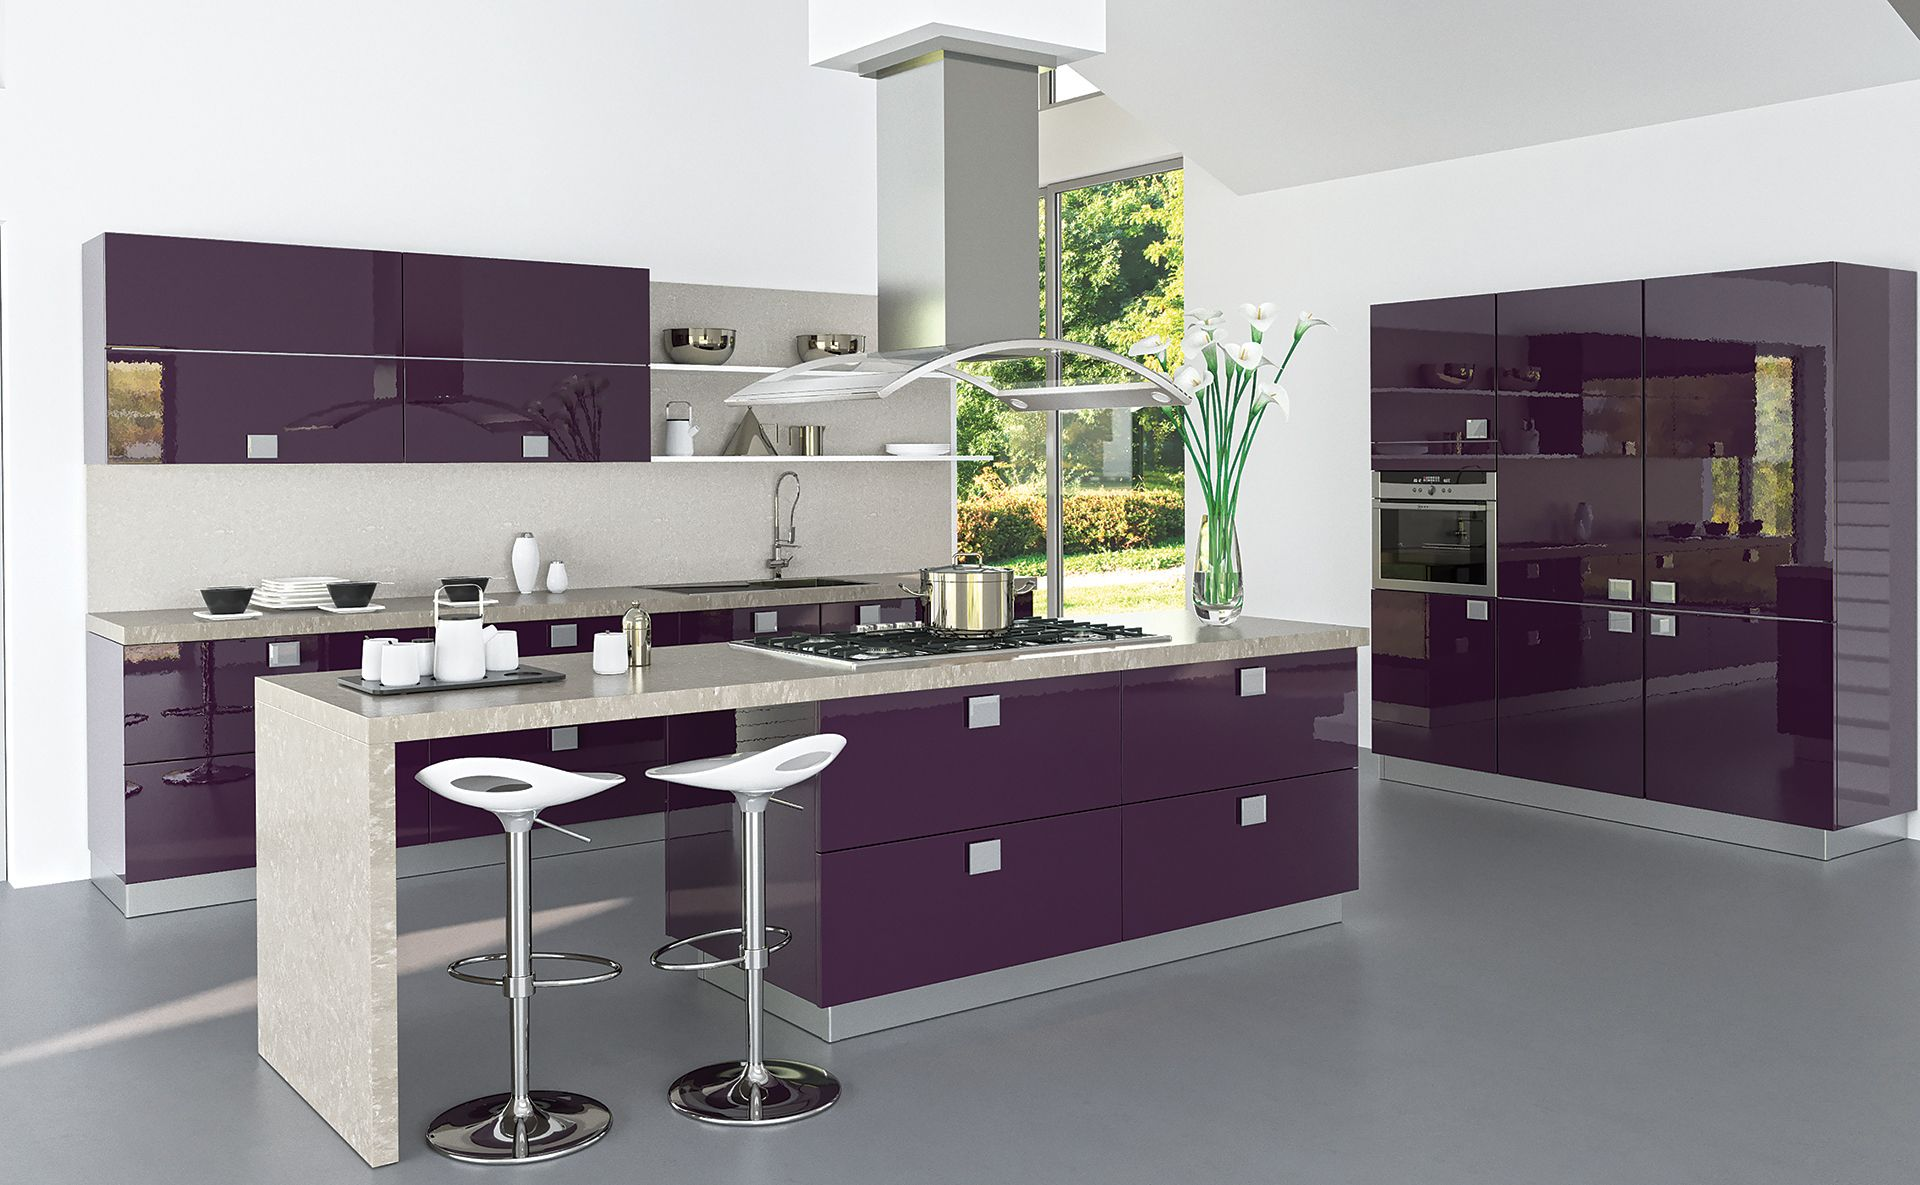 cuisine estoril aubergine atypique et quip e par cuisines teisseire. Black Bedroom Furniture Sets. Home Design Ideas